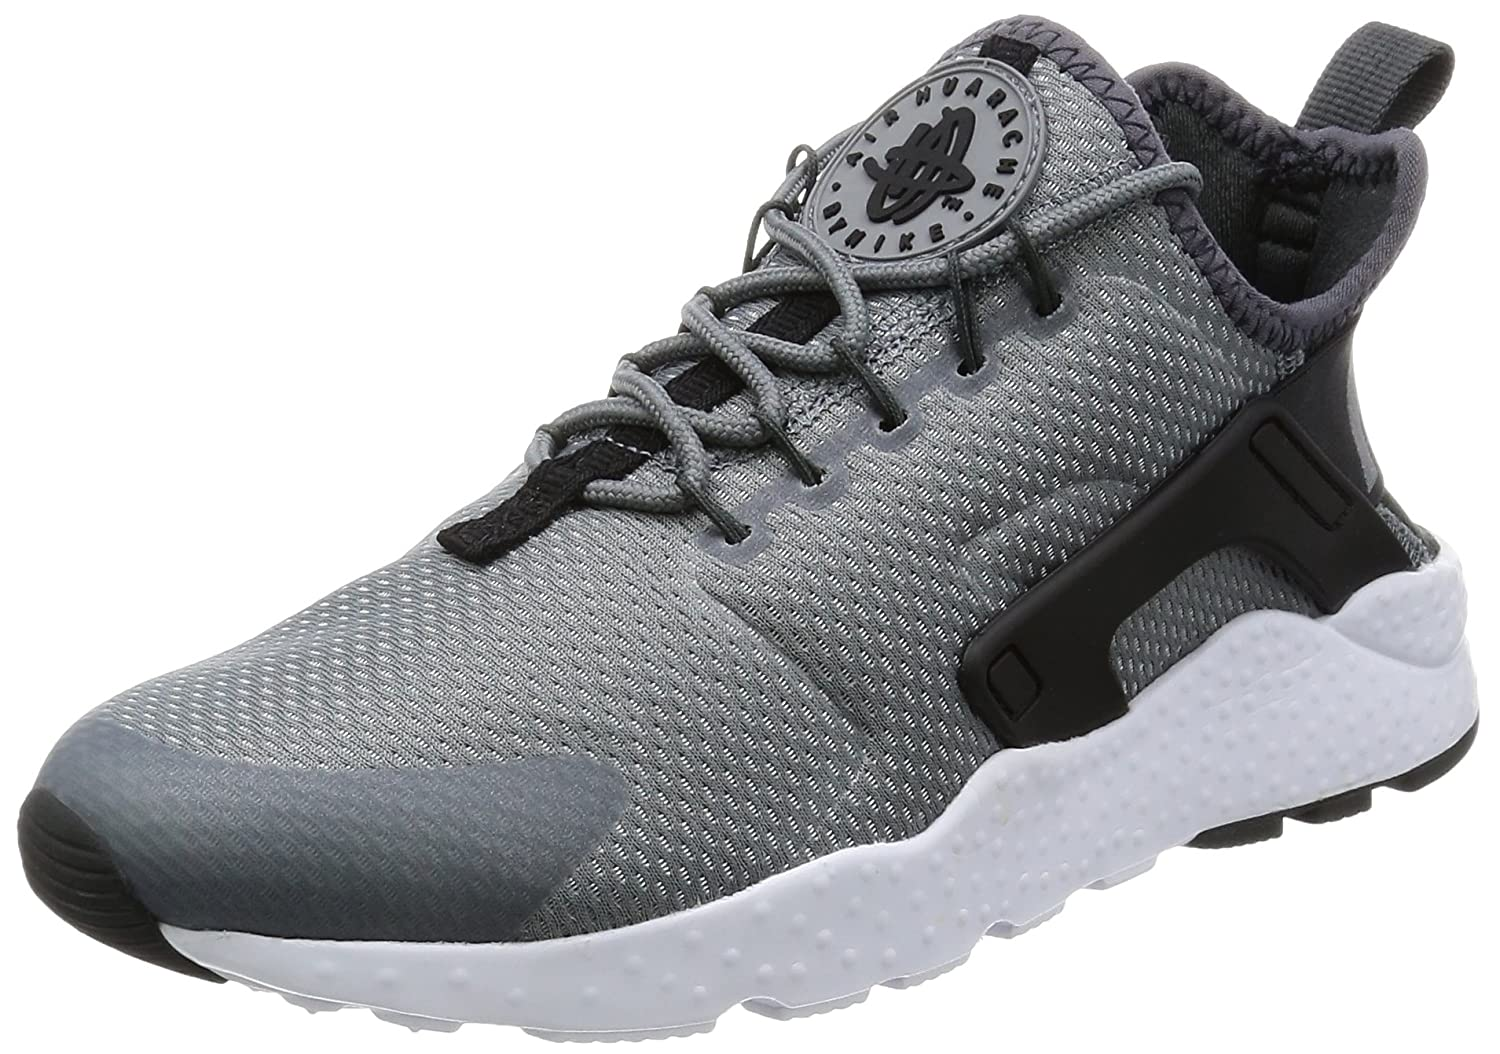 Turnschuhe damen NIKE ait huarache run ultra woman grau